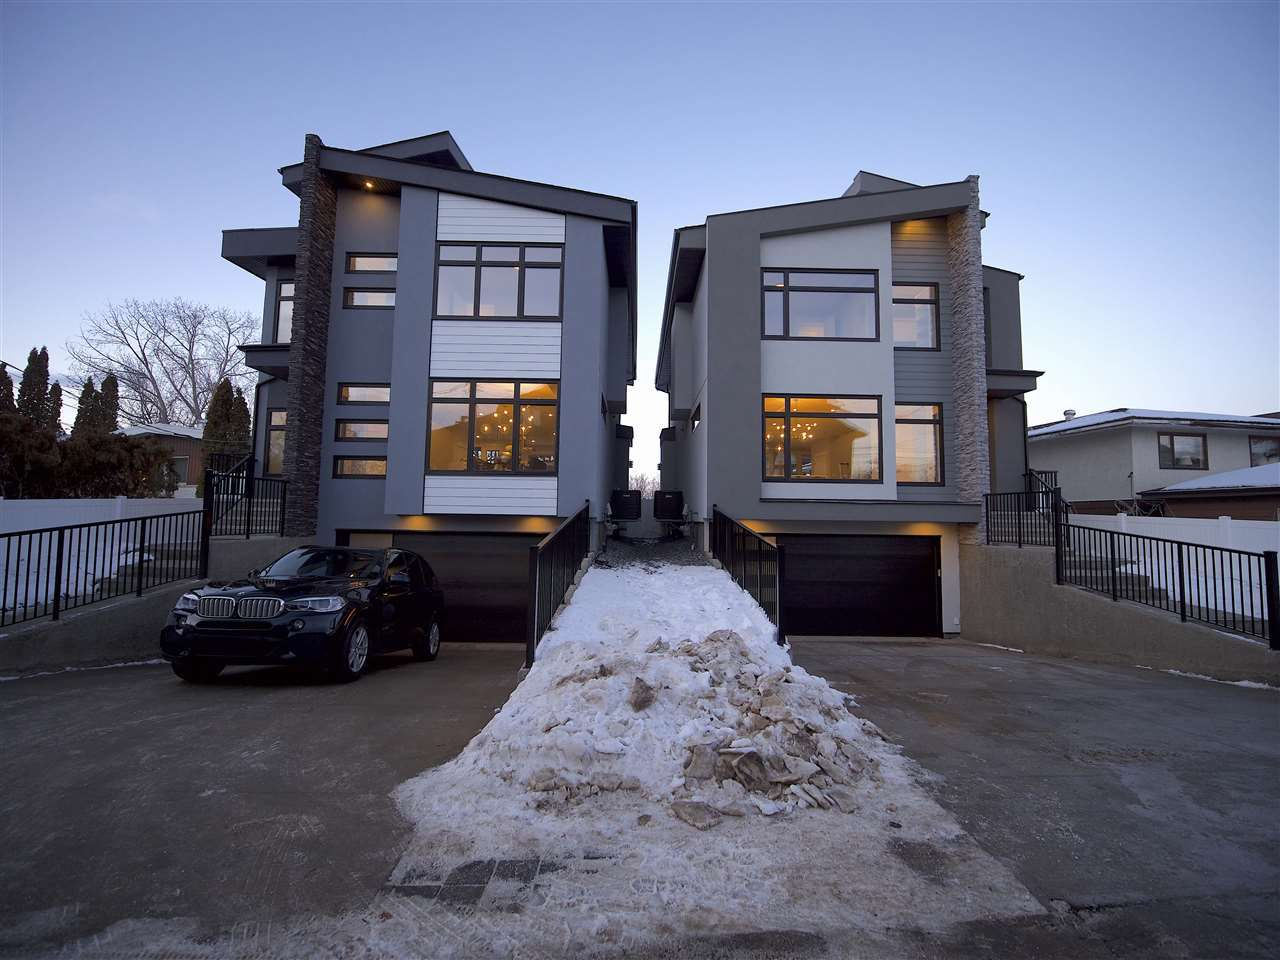 Main Photo: 8330 Rowland Road in Edmonton: Zone 19 House for sale : MLS®# E4138661